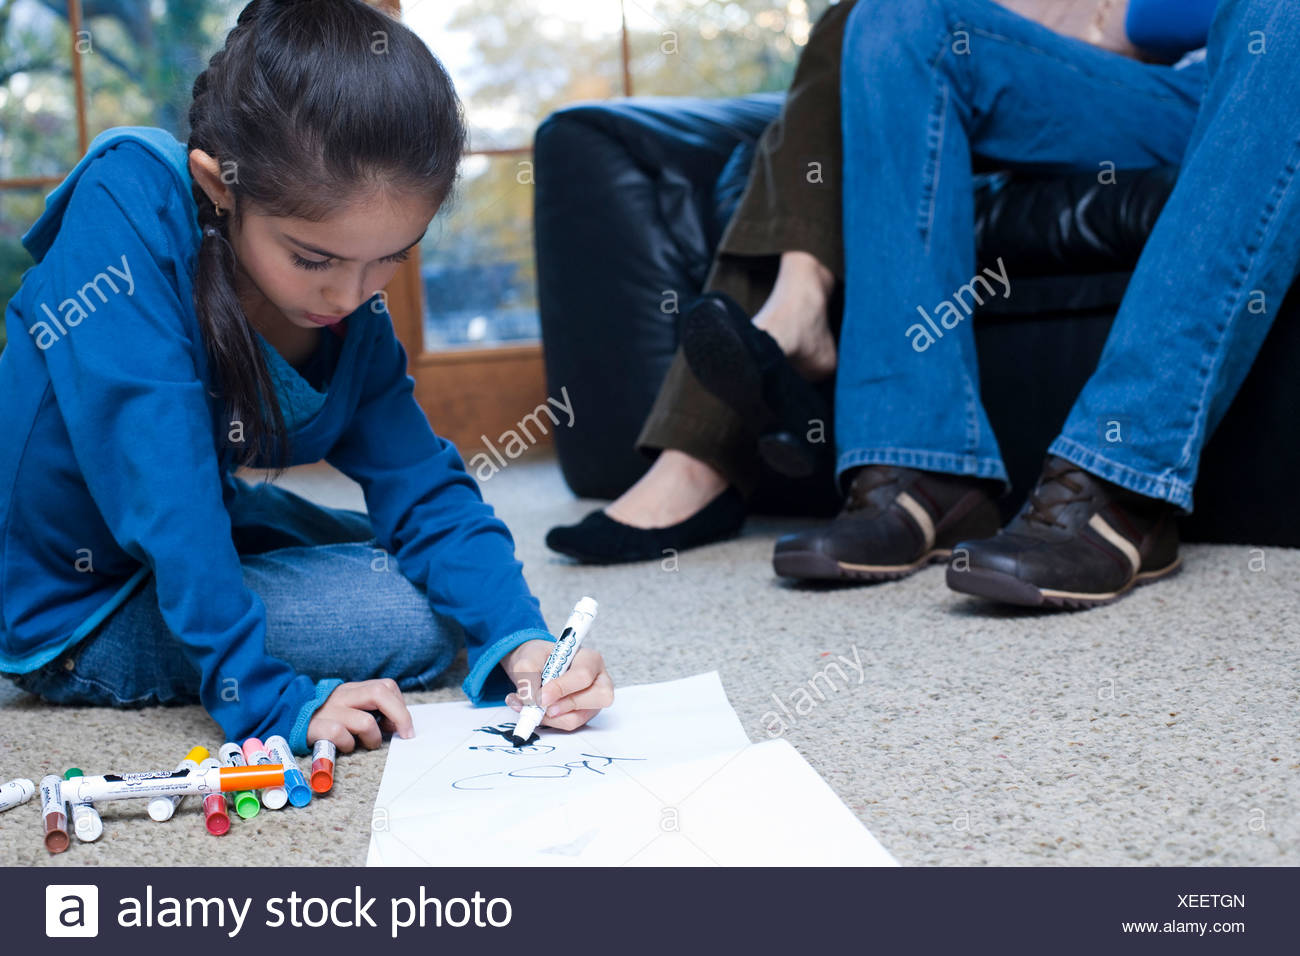 Young girl coloring with markers Stock Photo: 284297685 - Alamy